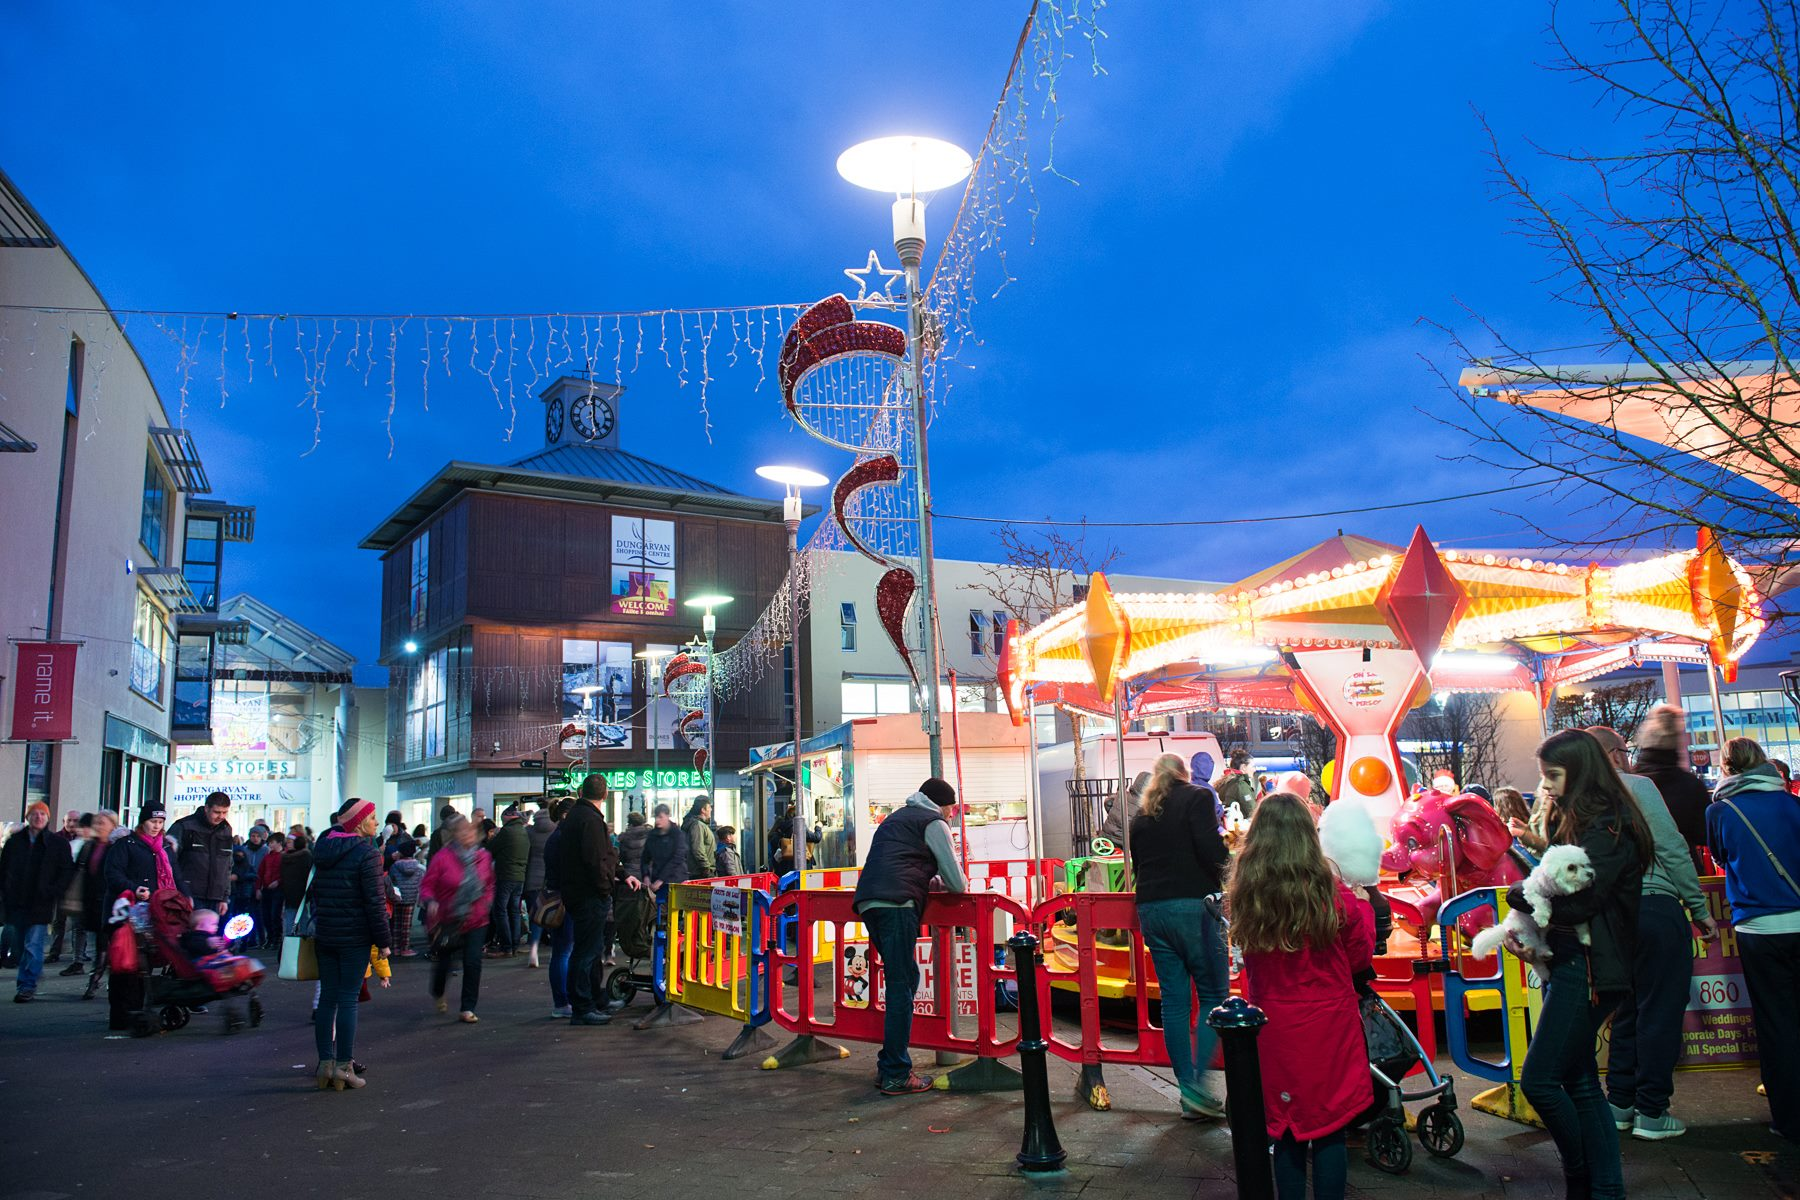 Dungarvan Shopping Centre is turning on its Christmas lights this Sunday